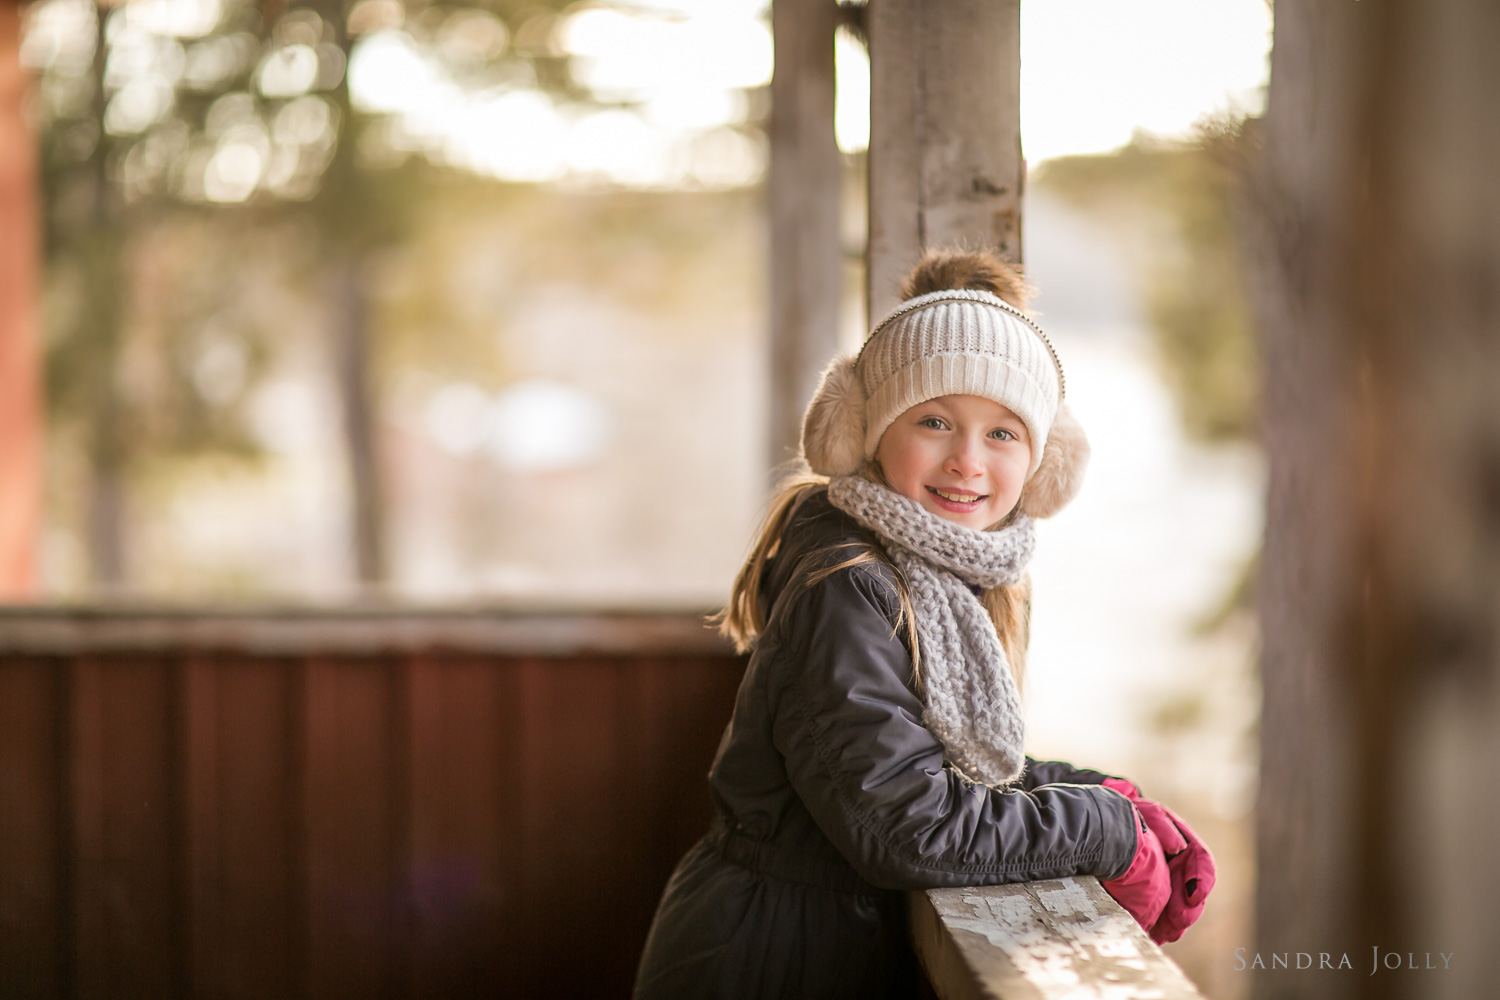 Photo-of-a-girl-on-a-porch-in-Sweden-by-Sandra-Jolly.jpg